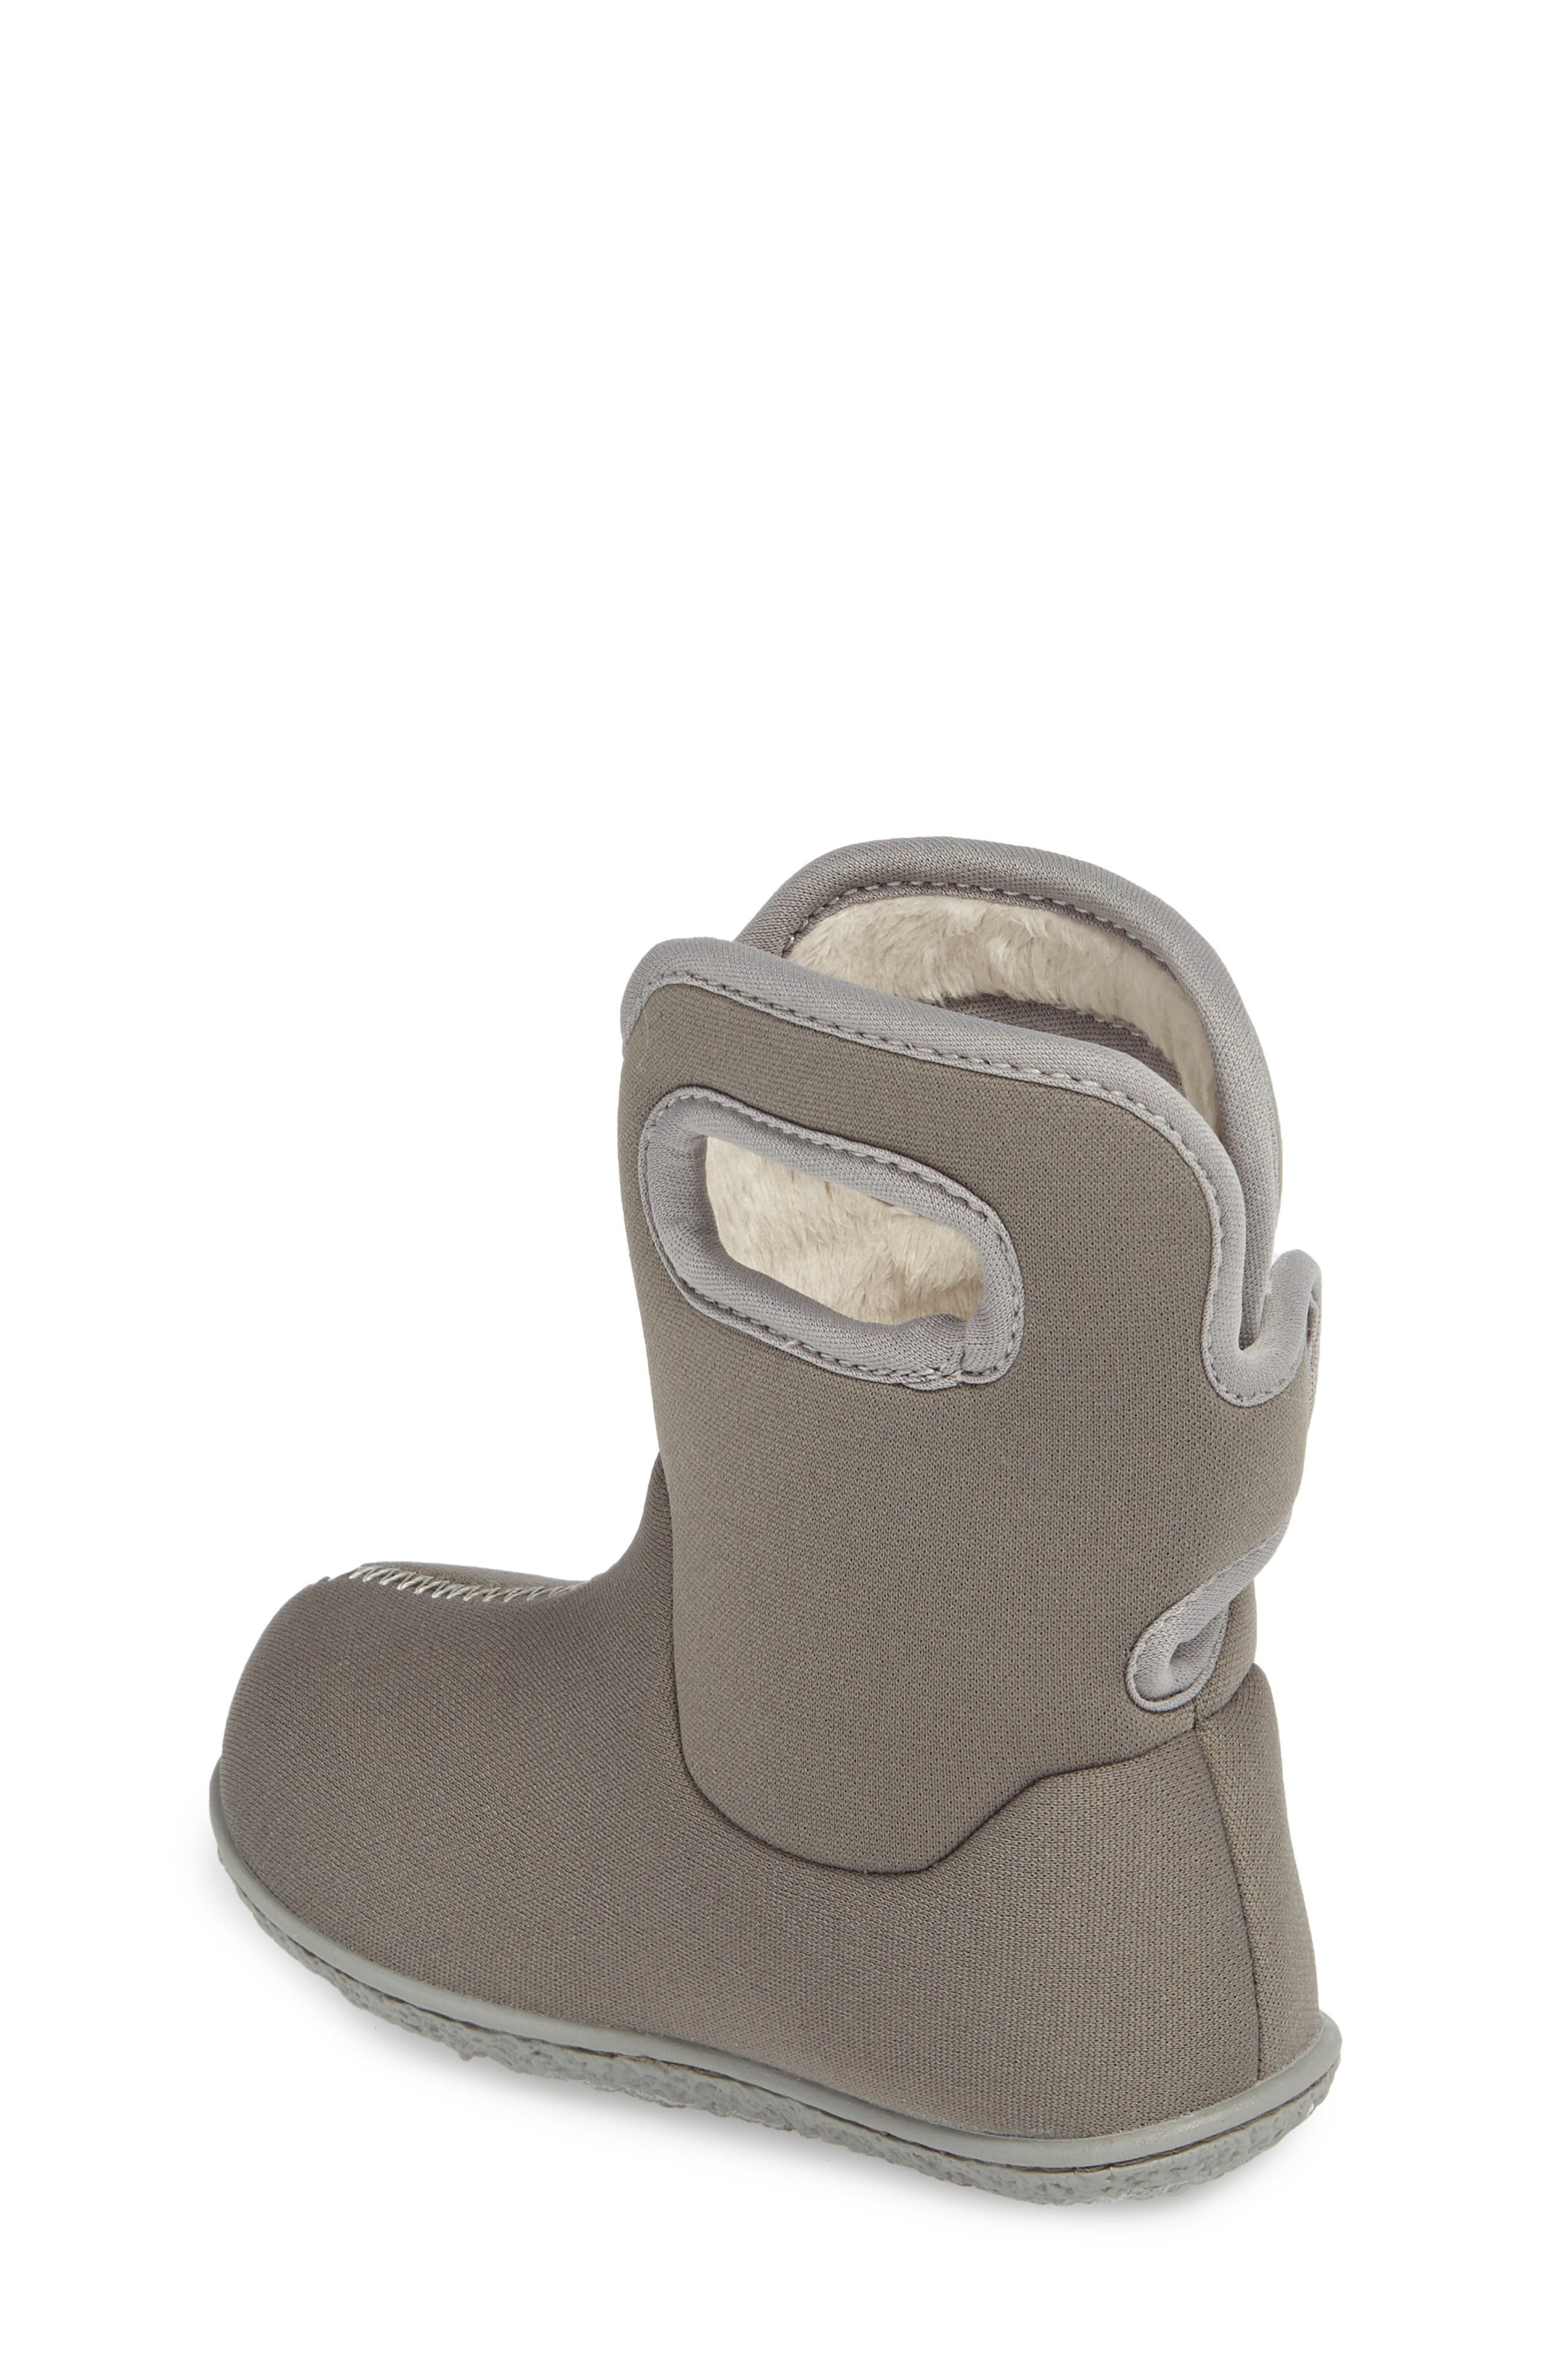 Classic Solid Insulated Waterproof Rain Boot,                             Alternate thumbnail 2, color,                             Light Gray Multi